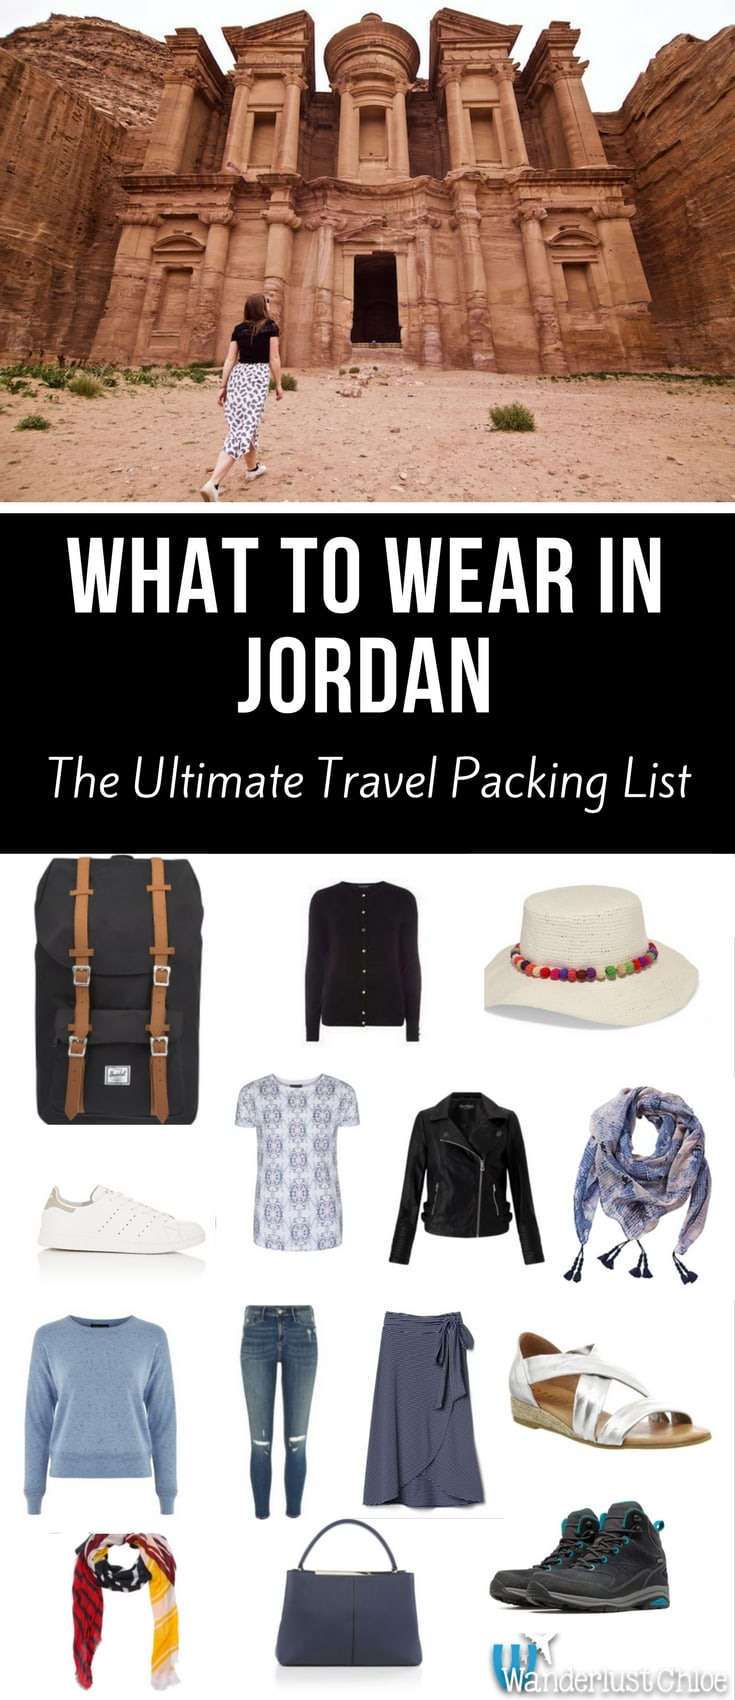 What To Wear In Jordan - The Ultimate Travel Packing List